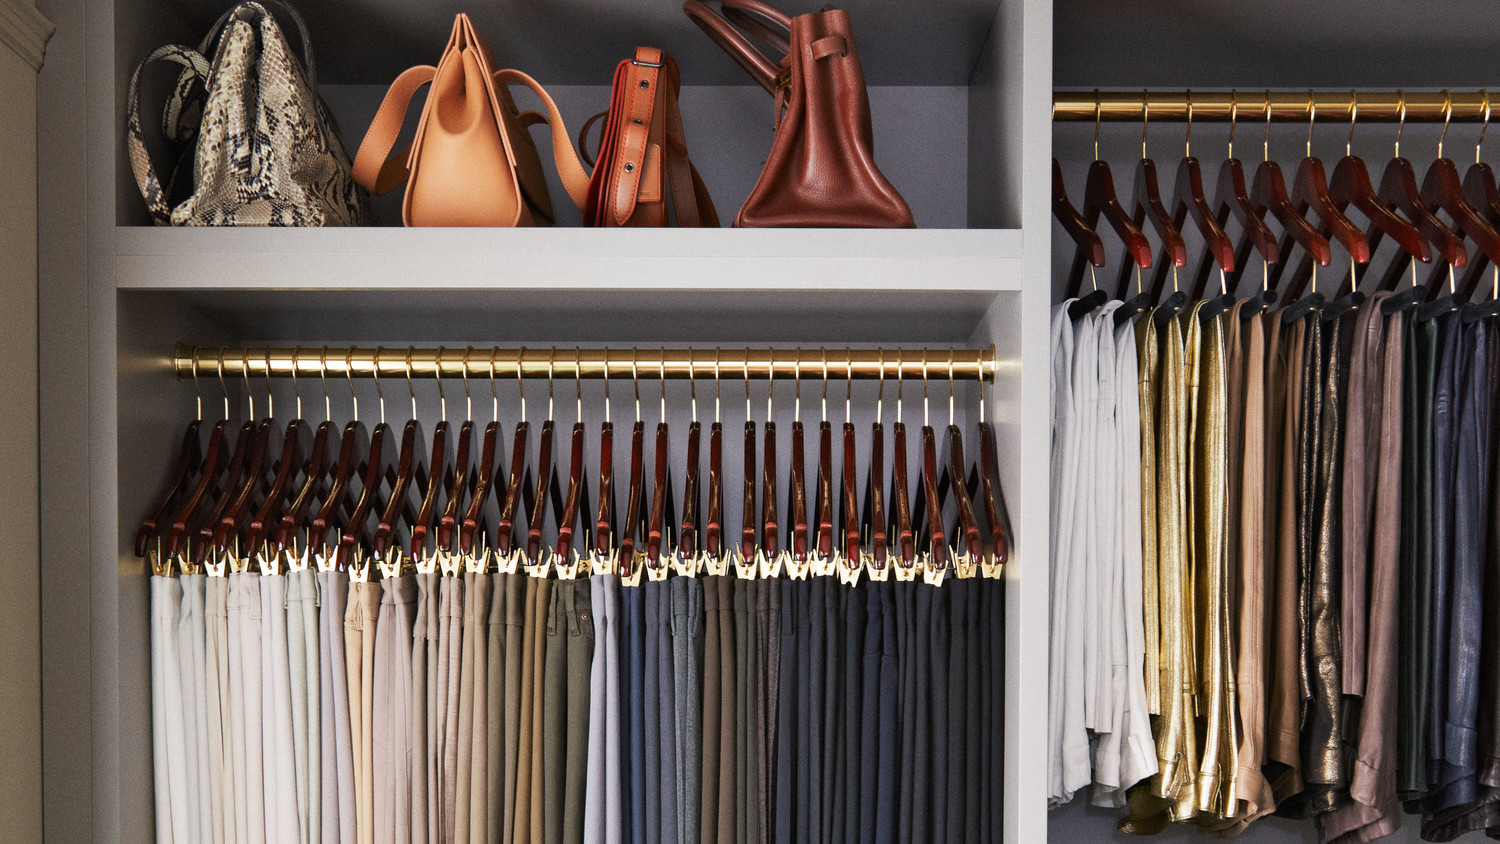 Expert-Approved Tips for Properly Hanging Your Shirts and Pants